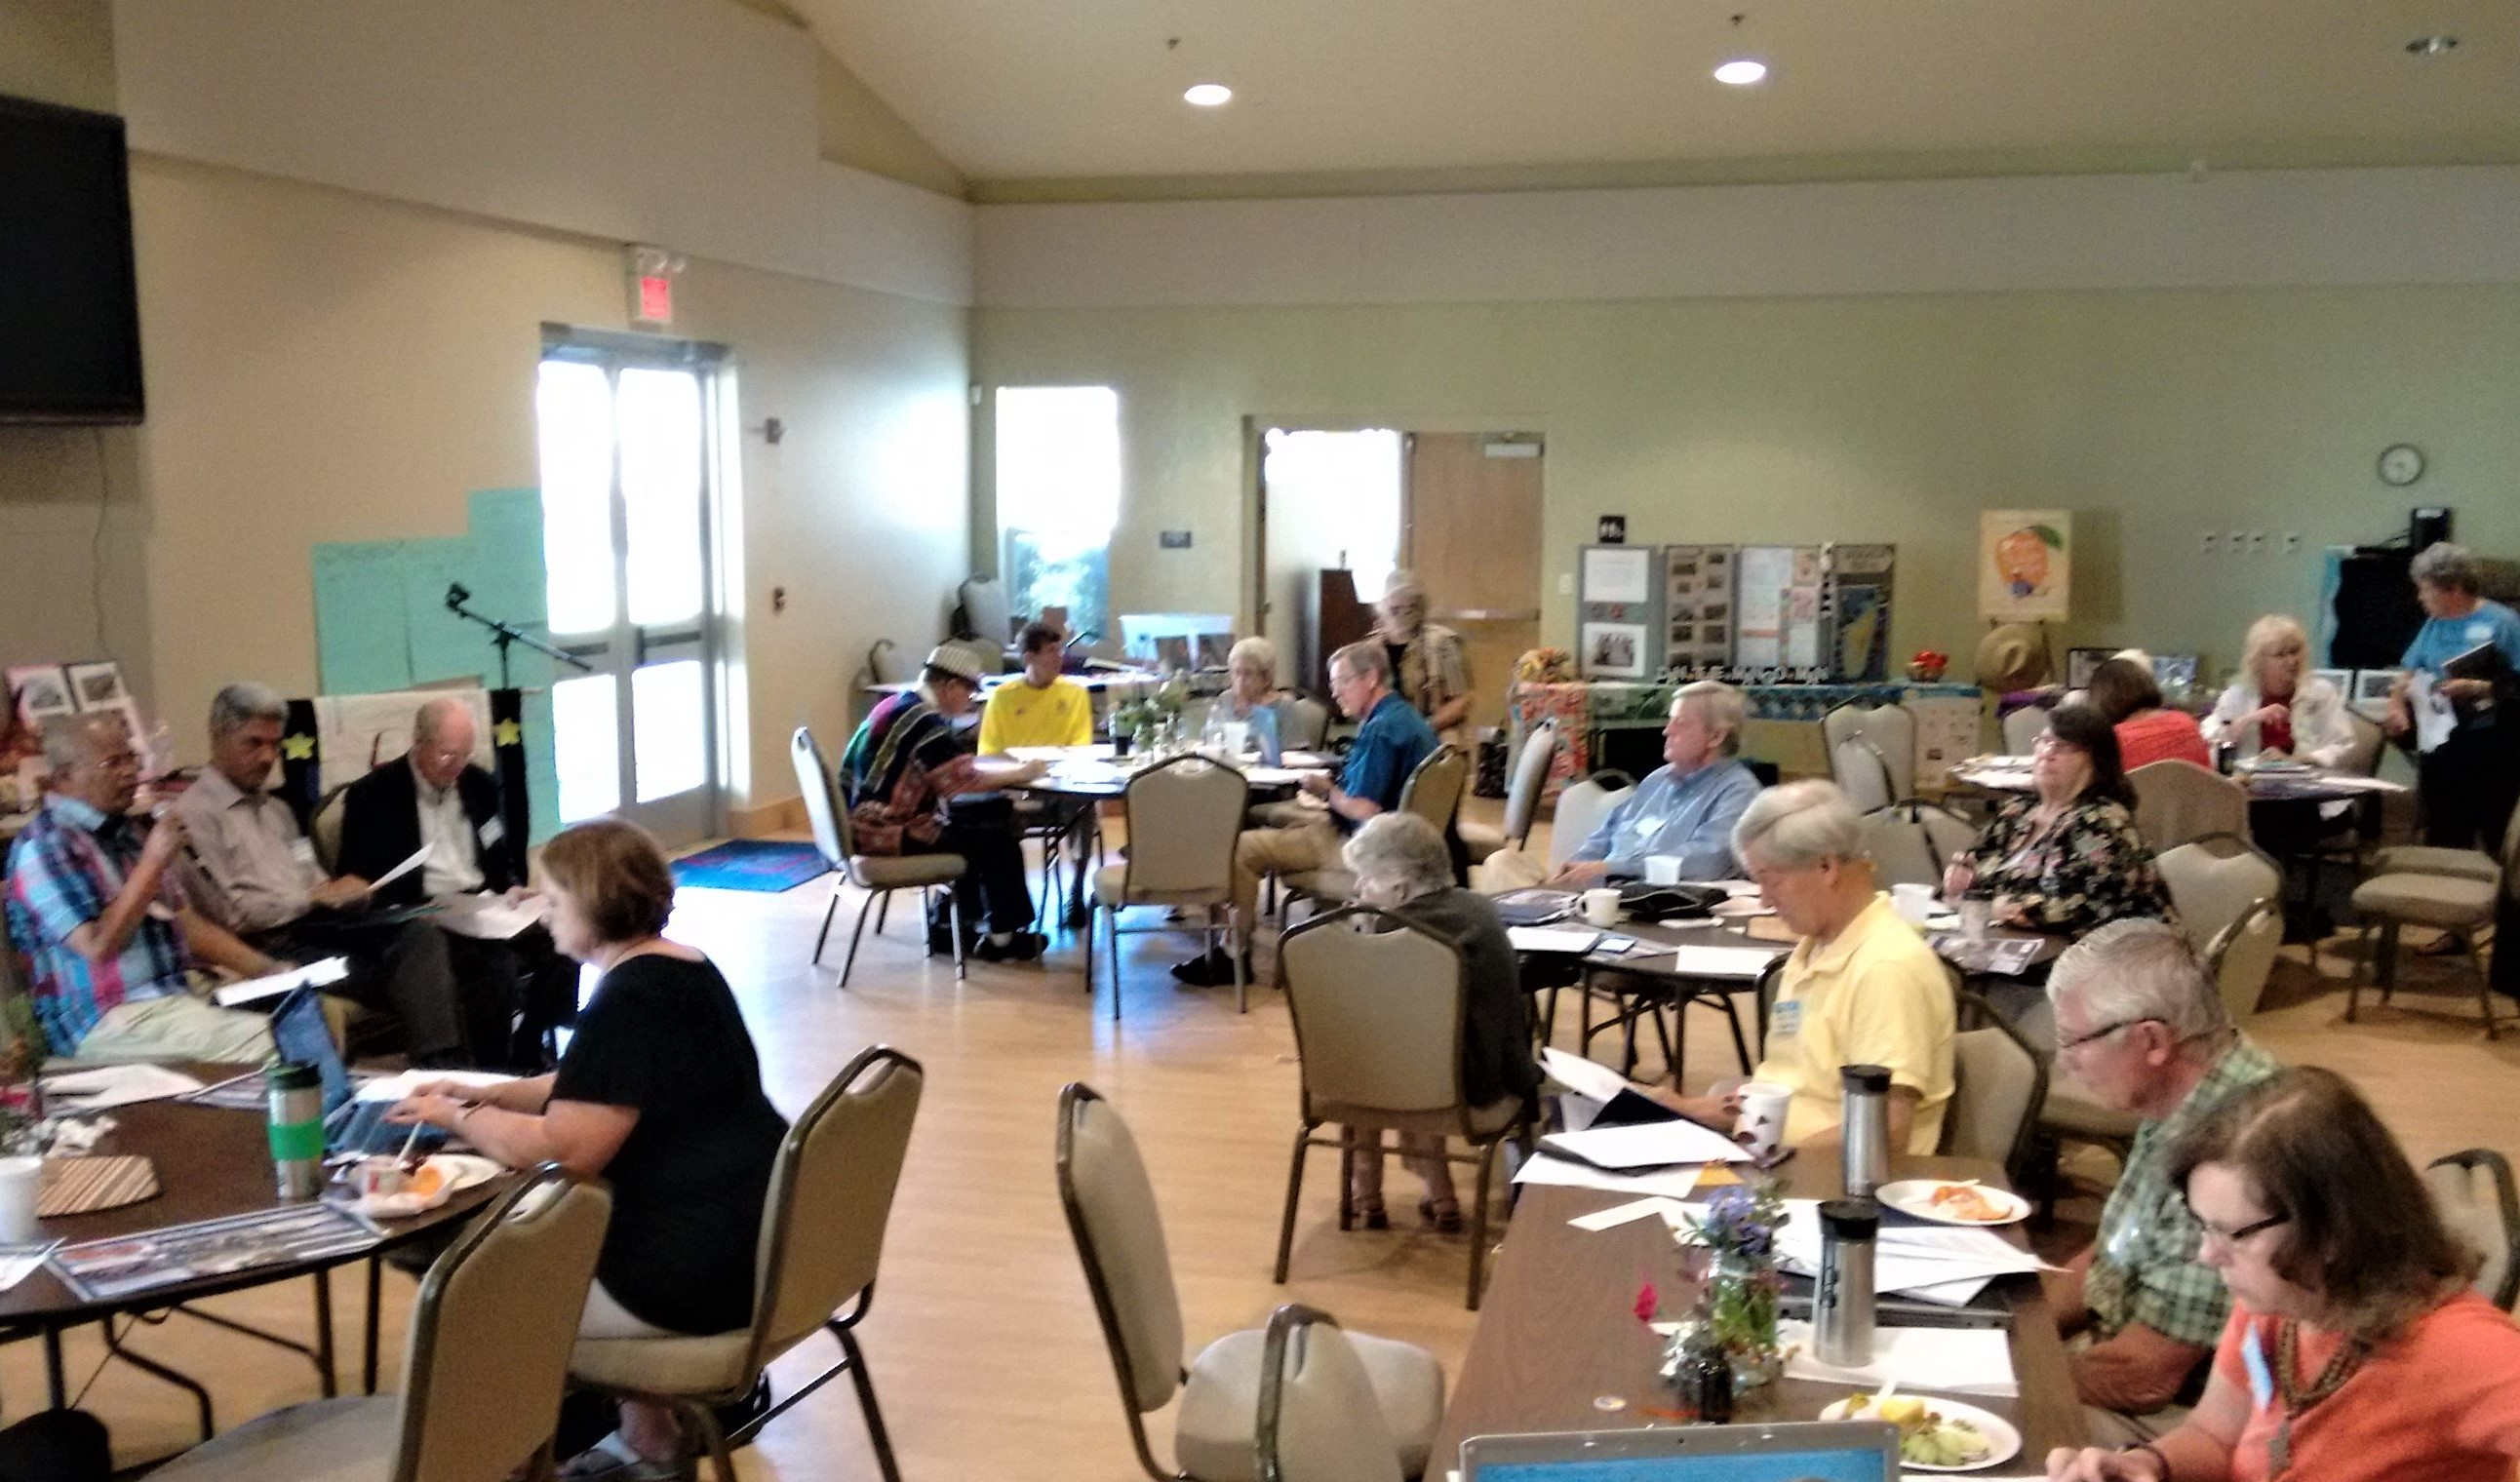 The Madagascar Mission Network (MMN) convenes for the 2nd time in as many years at Grace Covenant Presbyterian Church in Orlando, FL. Participants included people from: three countries, a number of organizations (including the PCUSA, the FJKM, and the Outreach Foundation), and a large number of congregations and individuals. They gathered to clarify MMN's vision/mission, its working objectives, its officers and other business relevant to work in support of the FJKM church in its holistic ministry and visionary leadership, while helping to improve the quality of spiritual and earthly life.